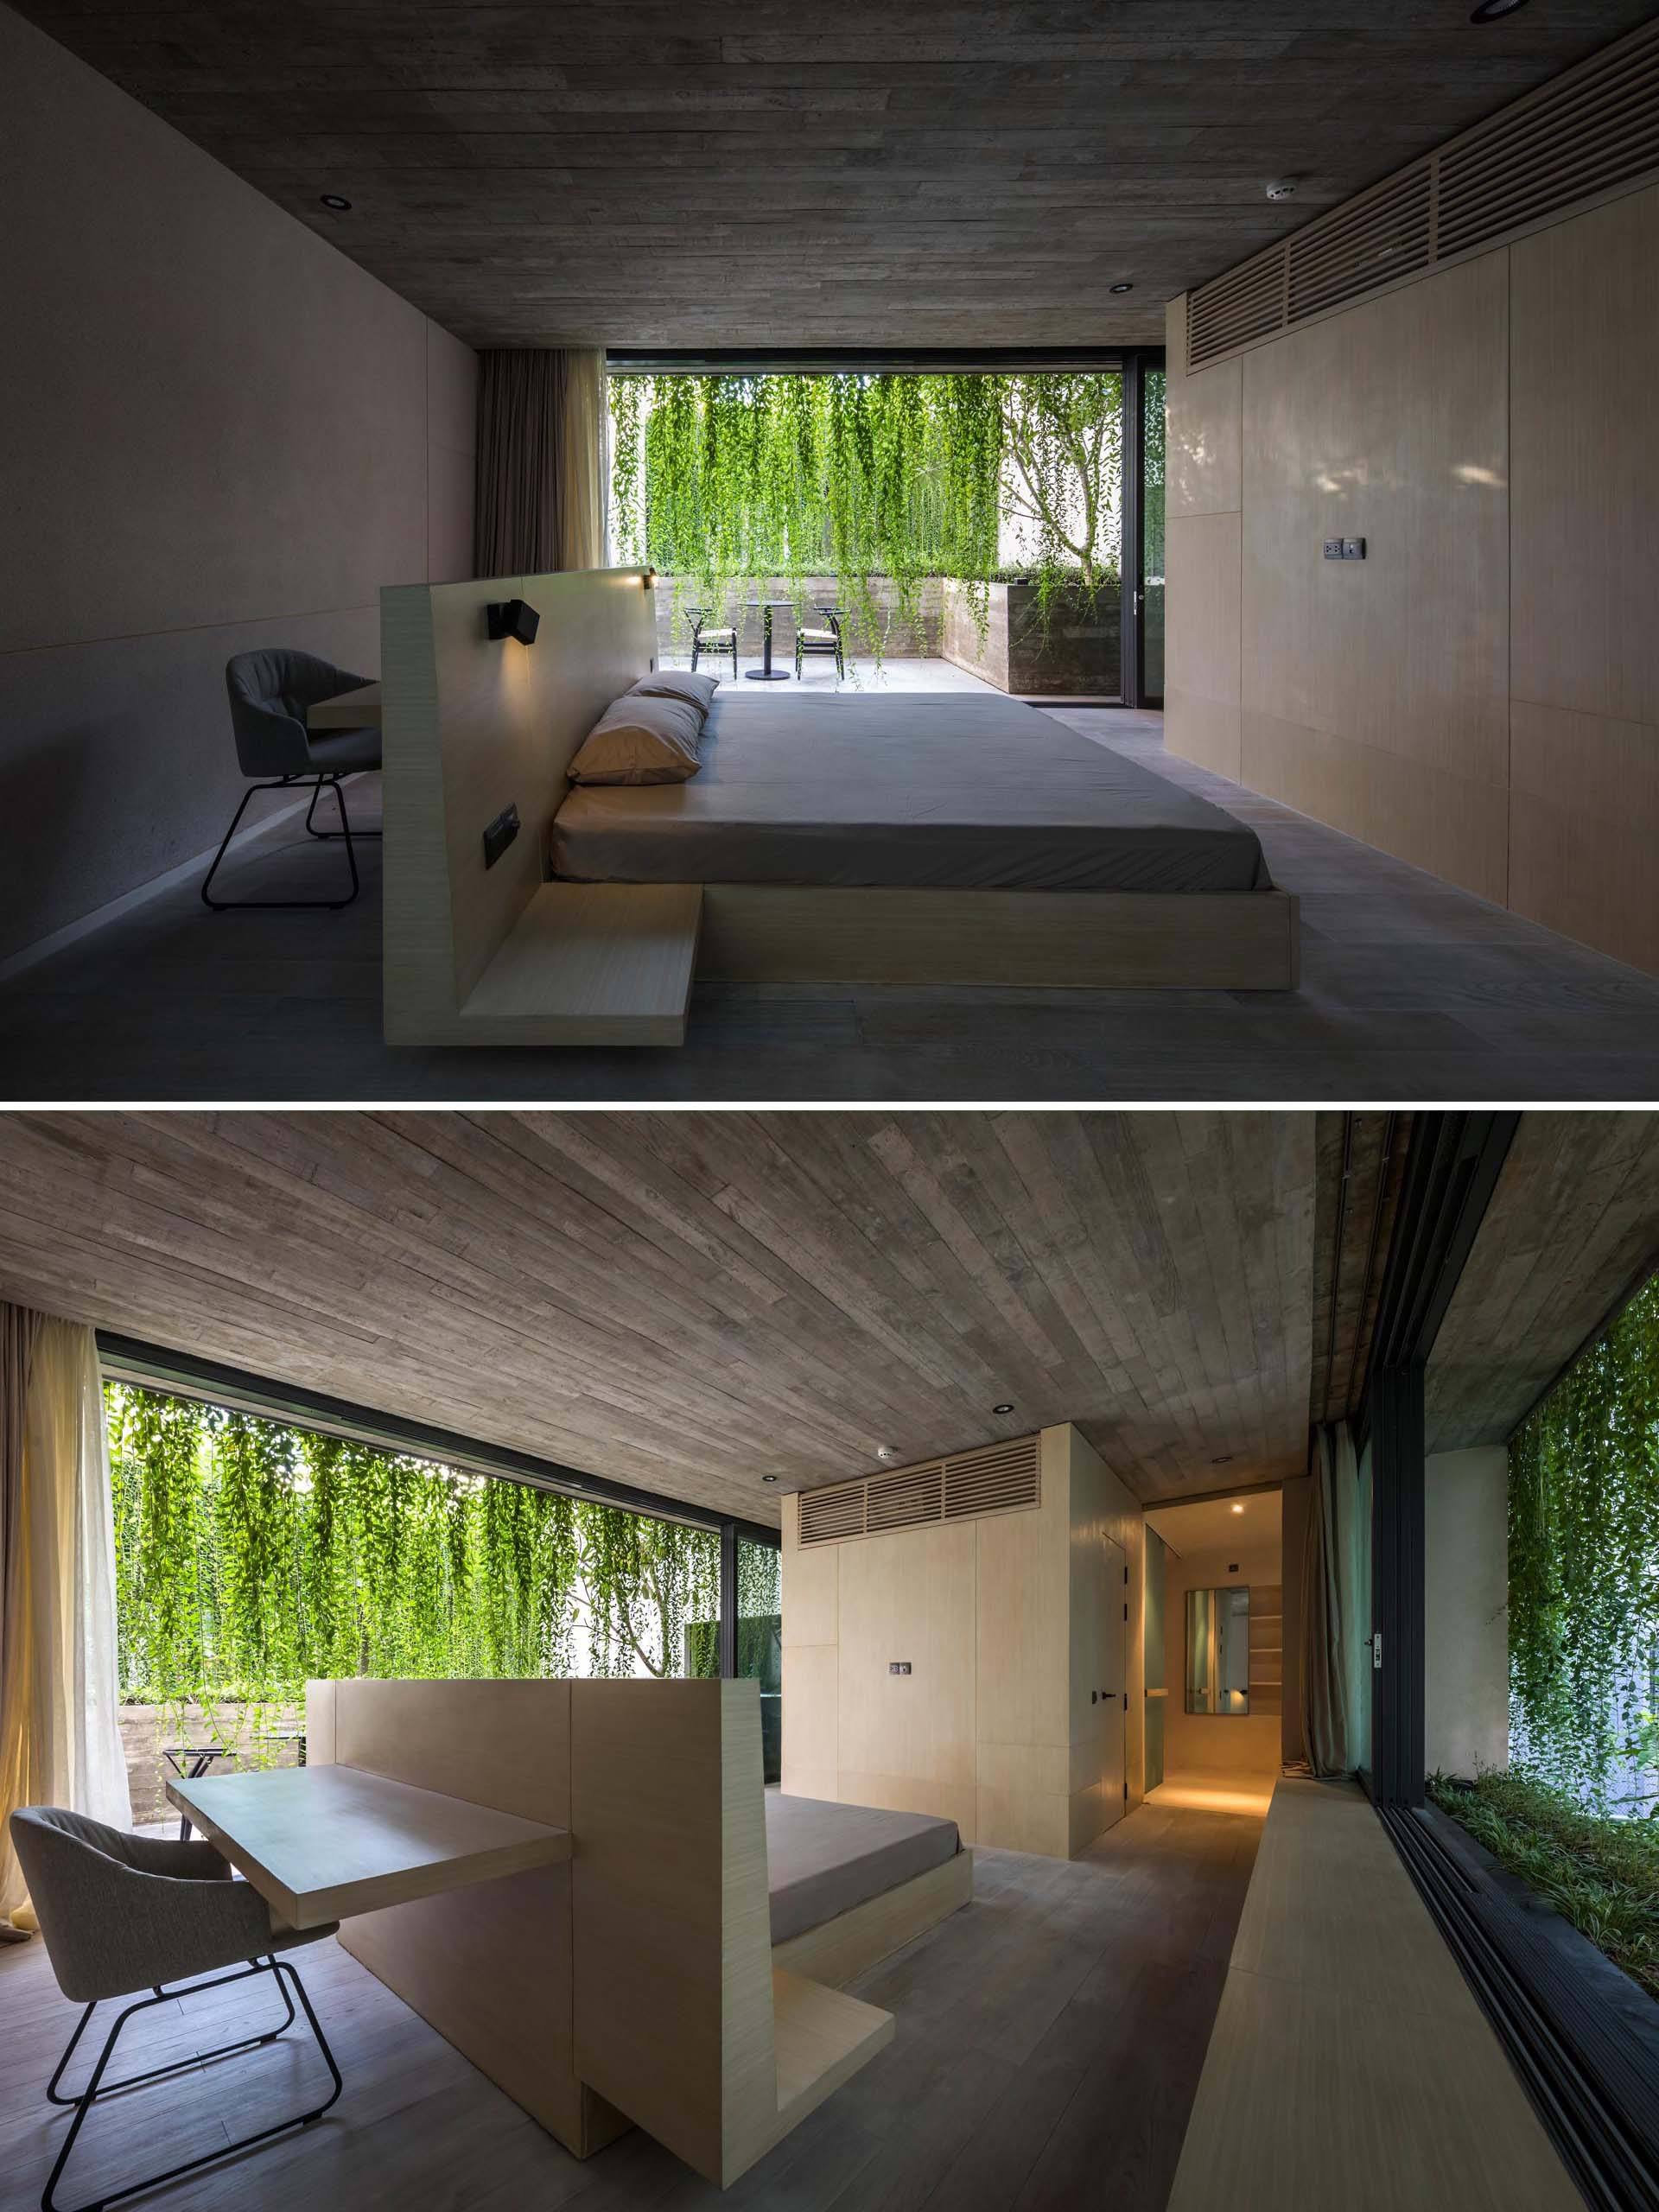 A minimalist bedroom with concrete walls, and a bed frame that incorporates a desk behind the headboard.